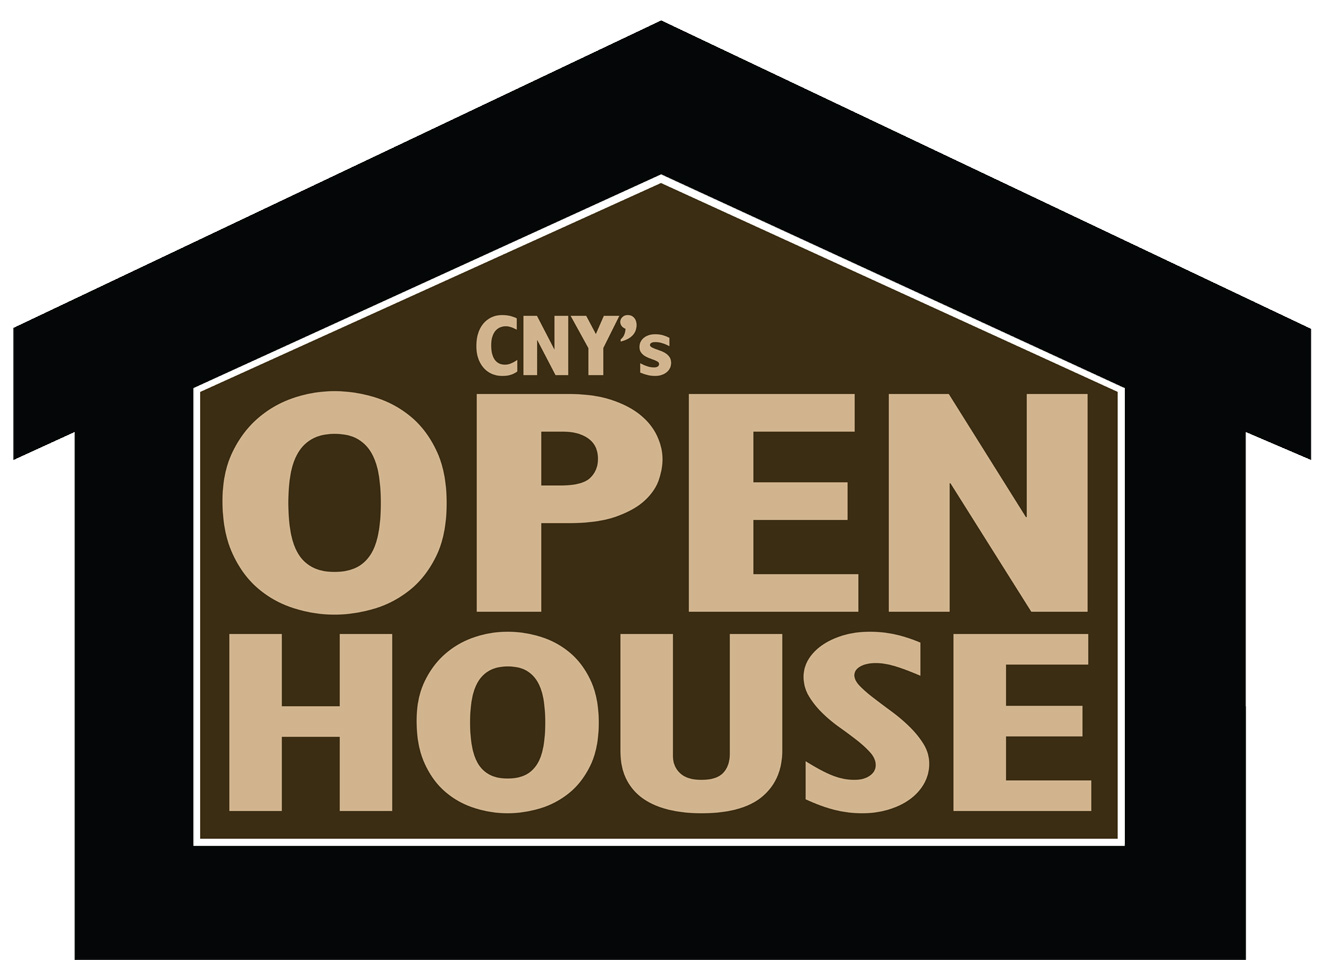 cnyopenhouse_logo_new